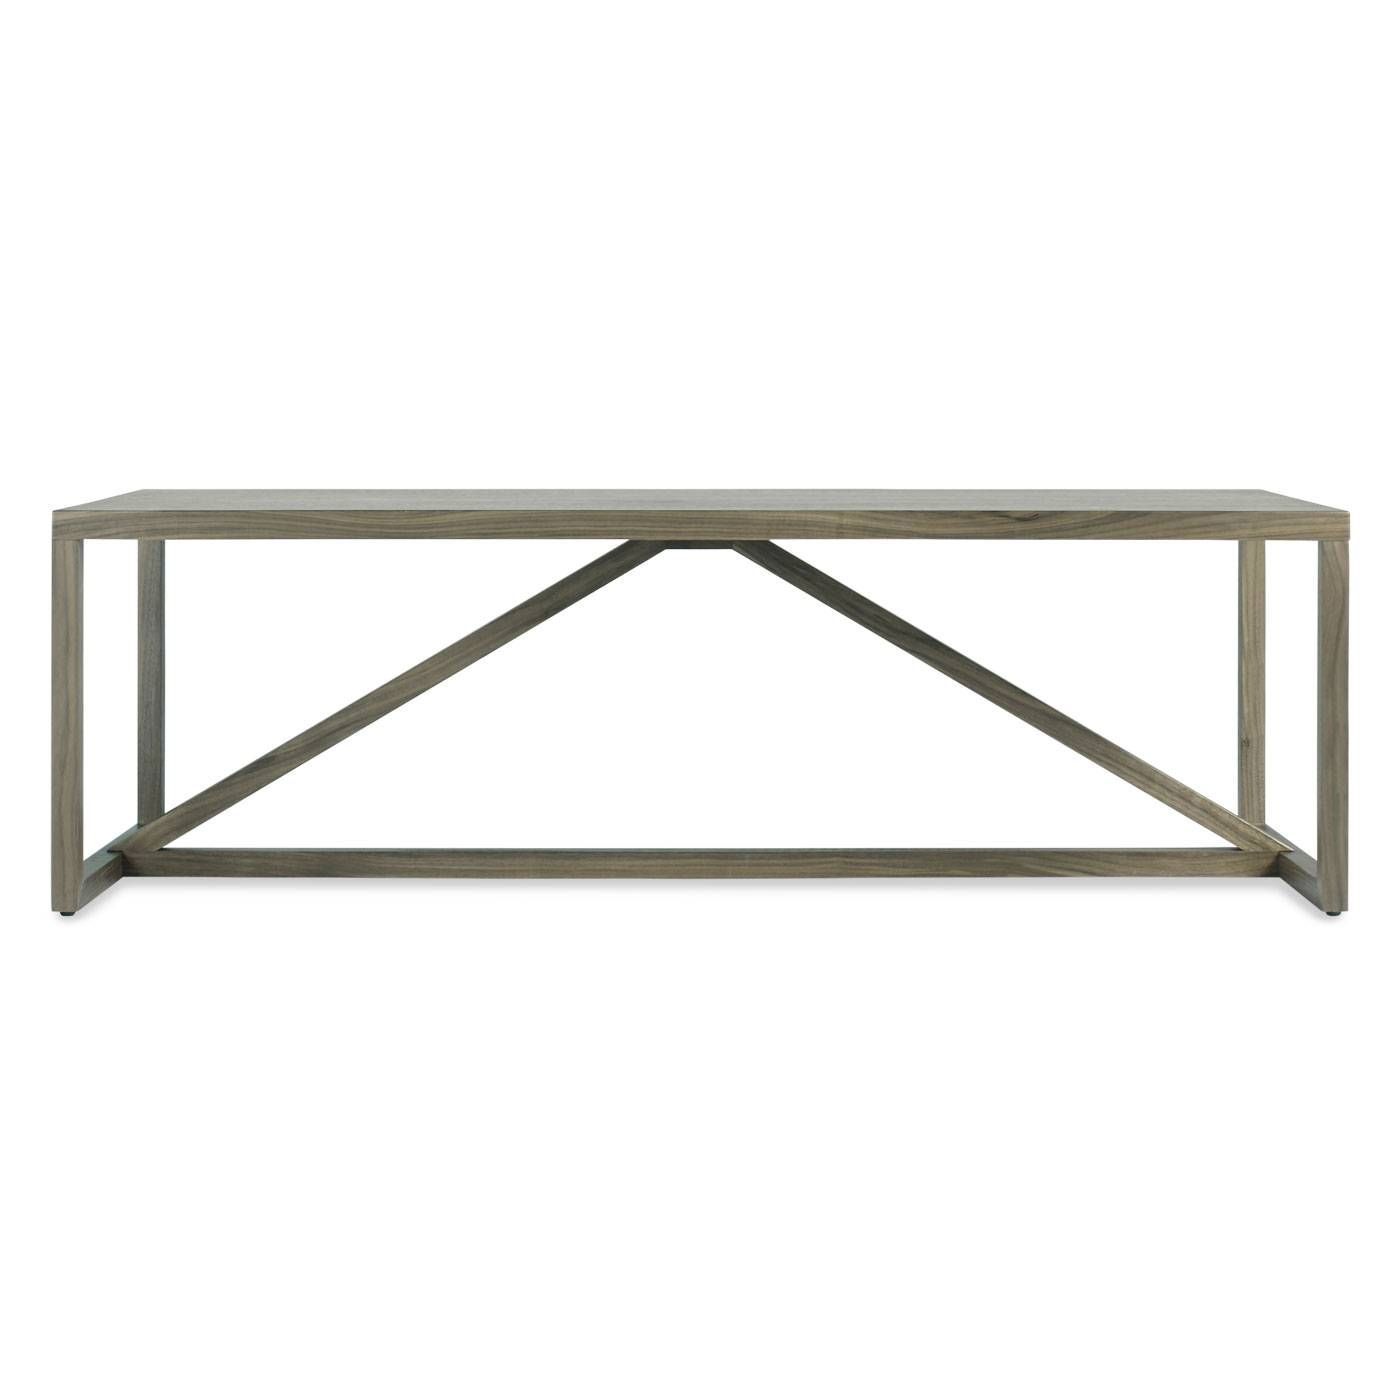 Strut Coffee Table   Square Wood Coffee Table   Blu Dot in Wood Chrome  Coffee Tables. 30 Best Collection of Wood Chrome Coffee Tables